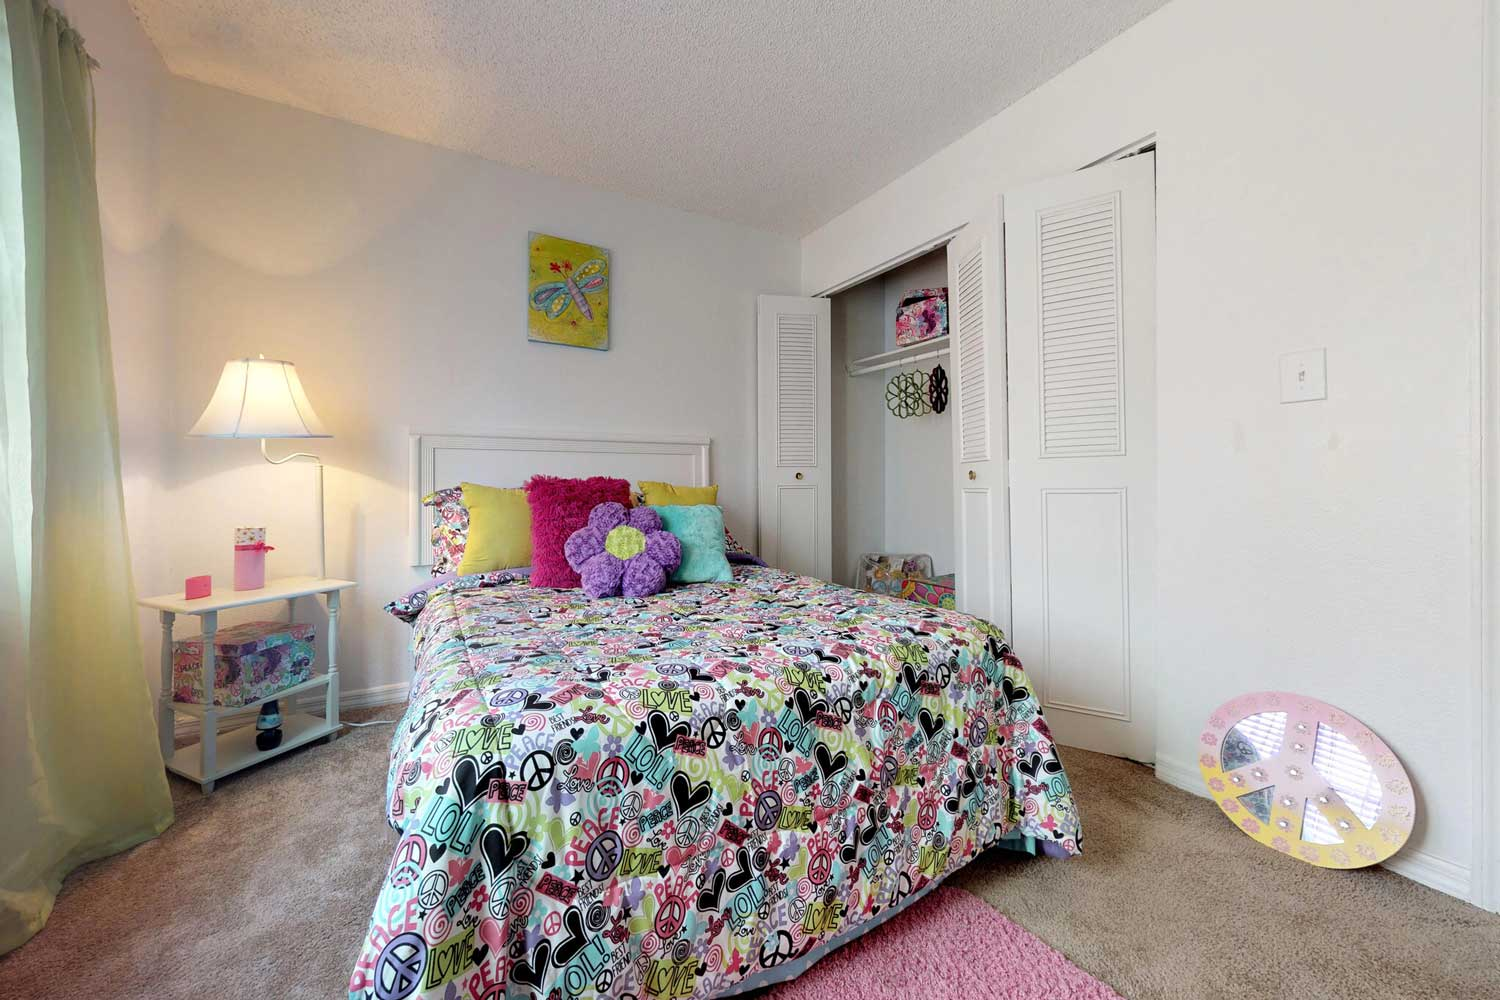 Extra Bedrooms for Children or Guests at Windsor Forest Apartments in Pompano Beach, FL